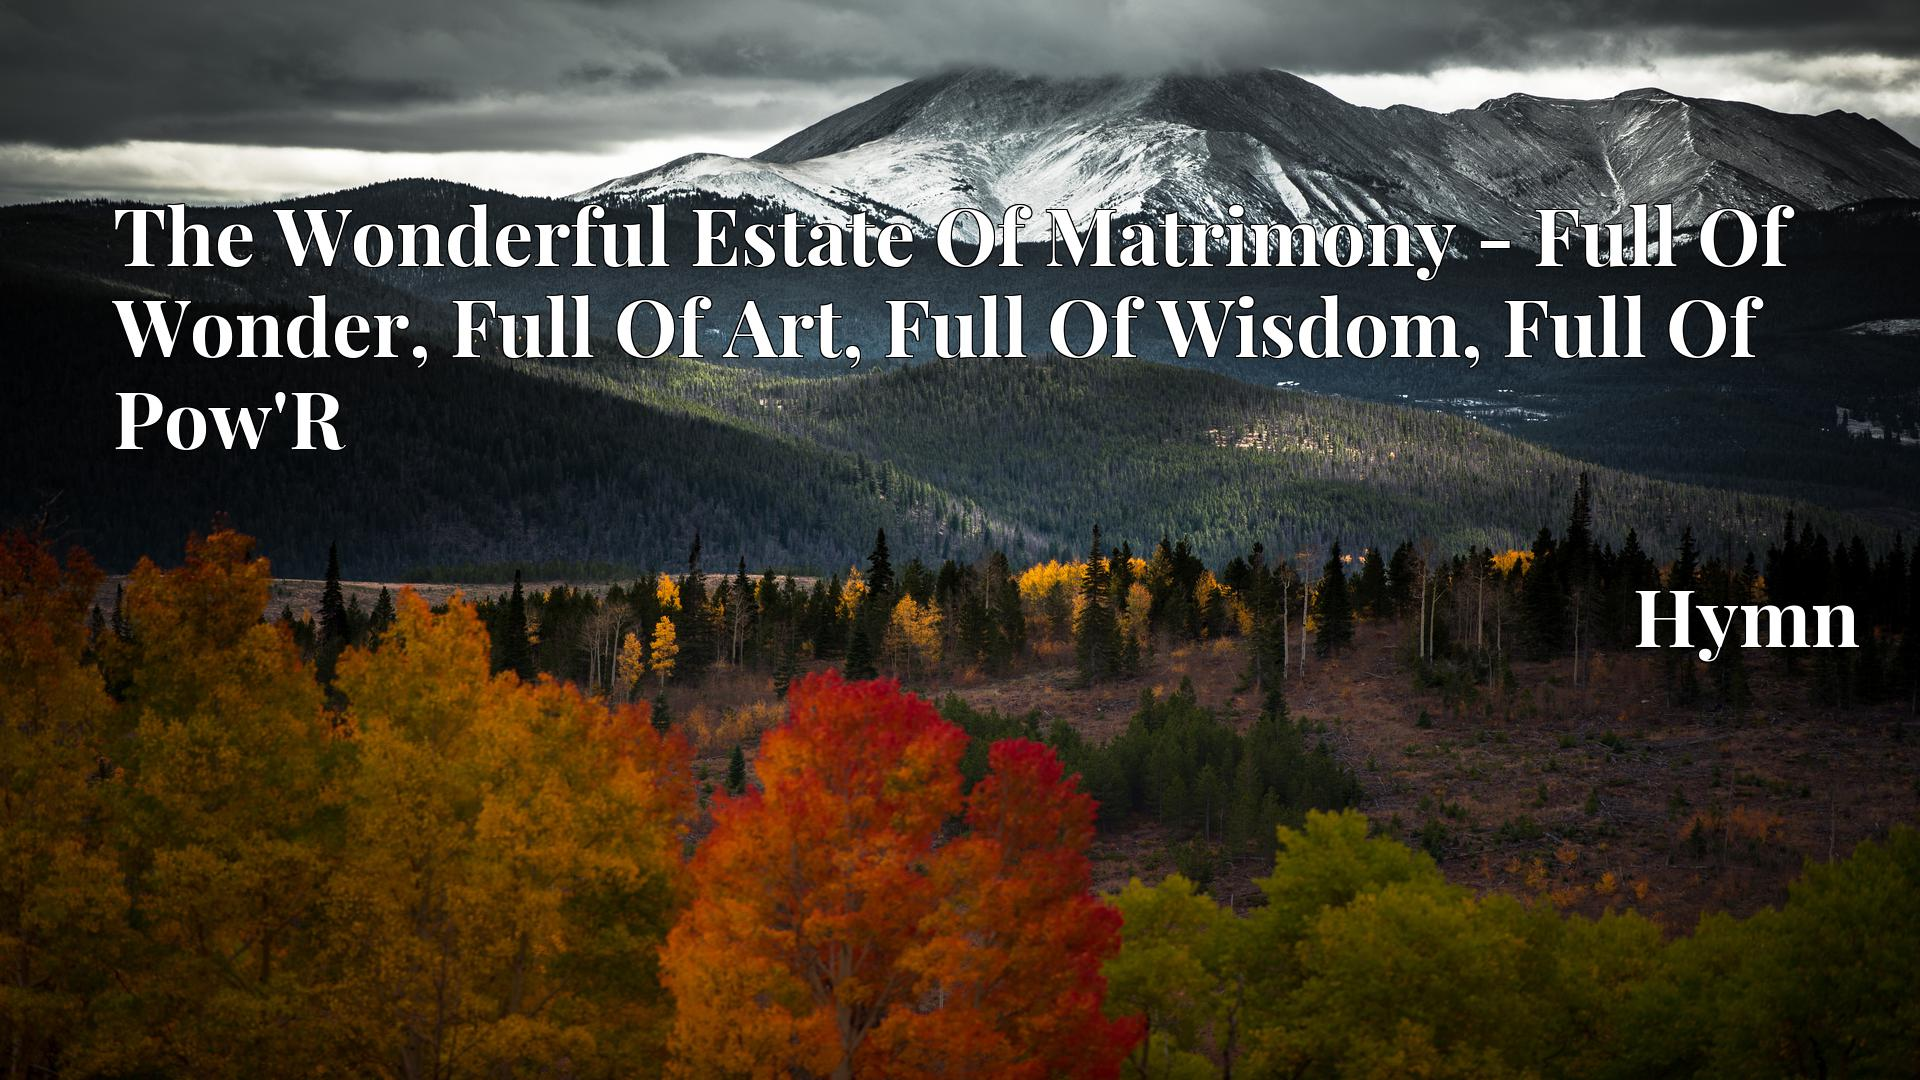 The Wonderful Estate Of Matrimony - Full Of Wonder, Full Of Art, Full Of Wisdom, Full Of Pow'R - Hymn